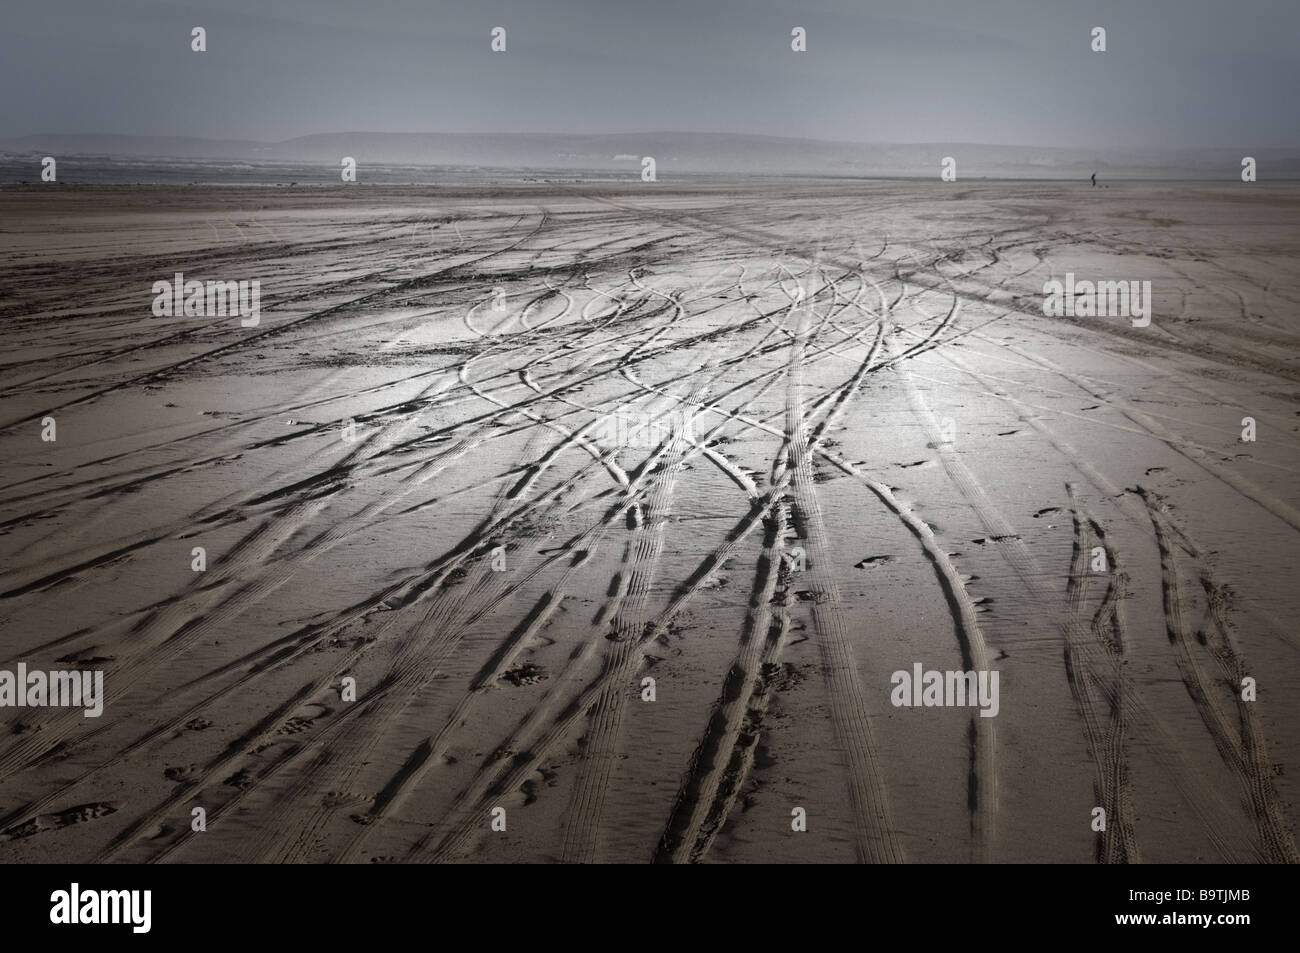 tracks in the sand (manipulated) - Stock Image